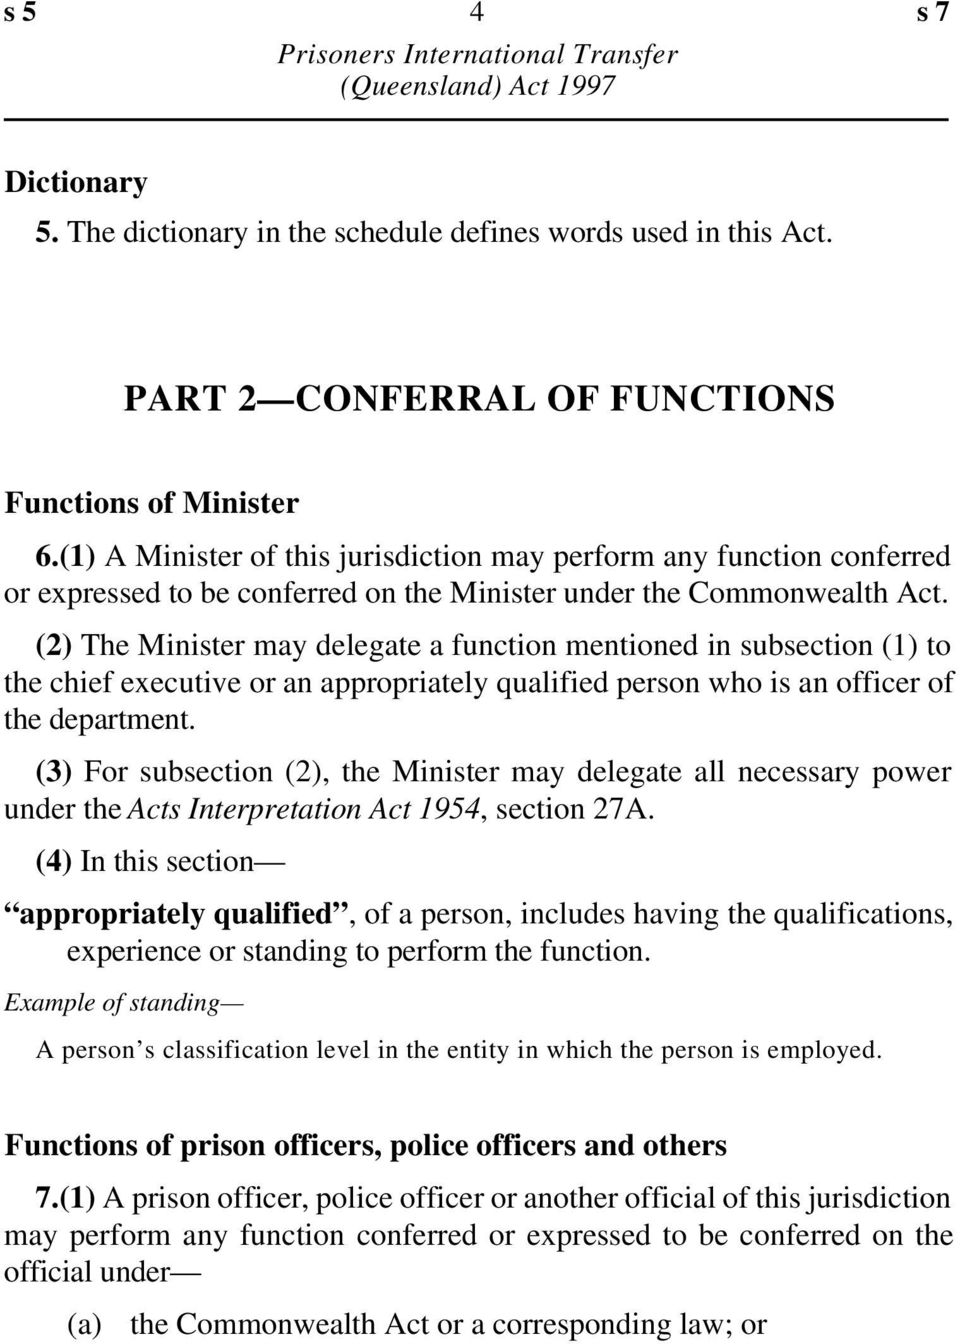 (2) The Minister may delegate a function mentioned in subsection (1) to the chief executive or an appropriately qualified person who is an officer of the department.